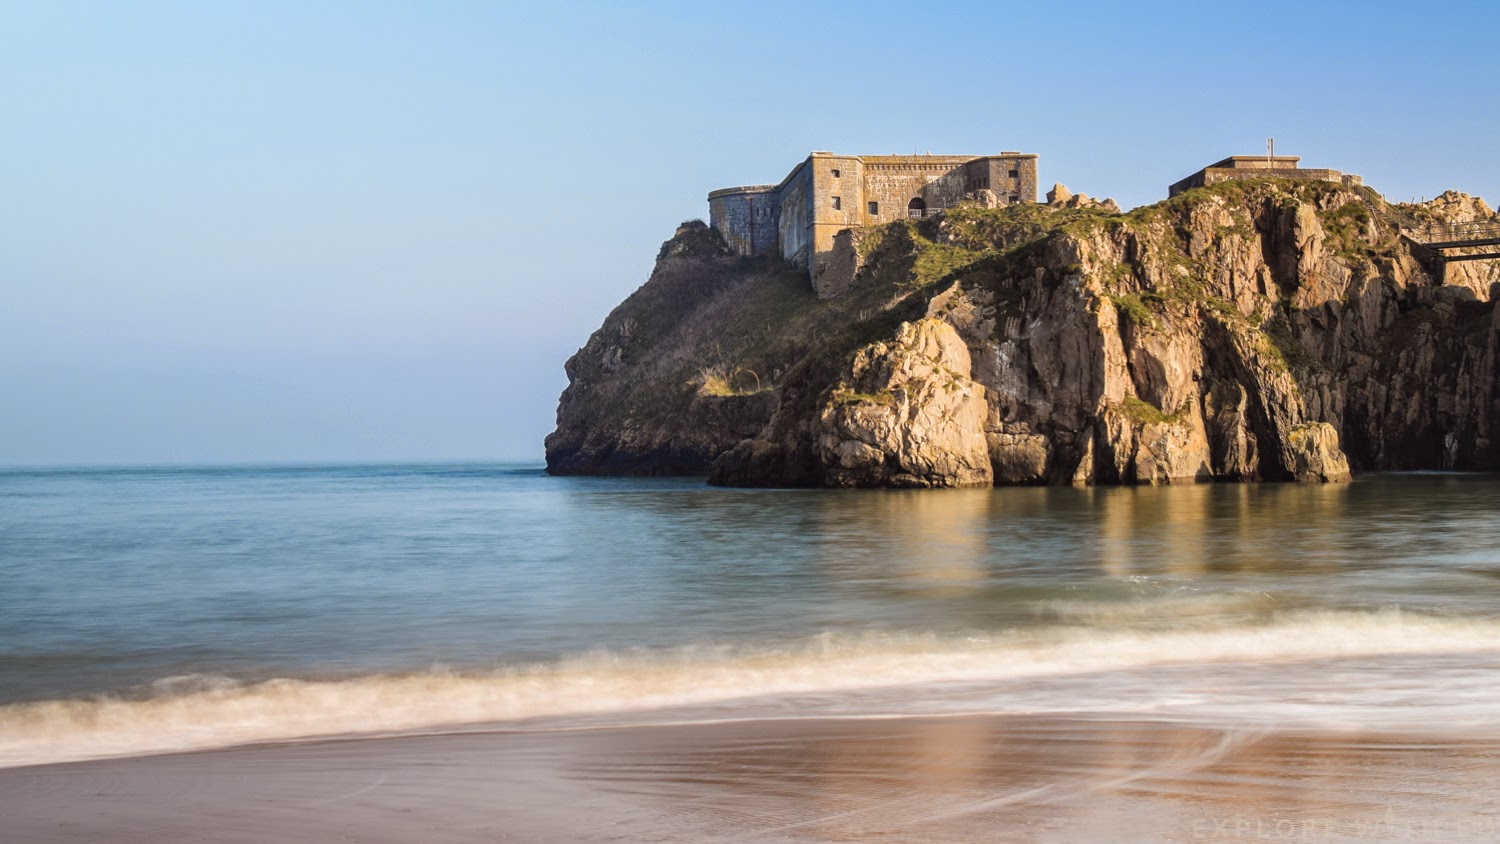 Tenby Castle Beach and the Fortress Remains on St Catherine's Island